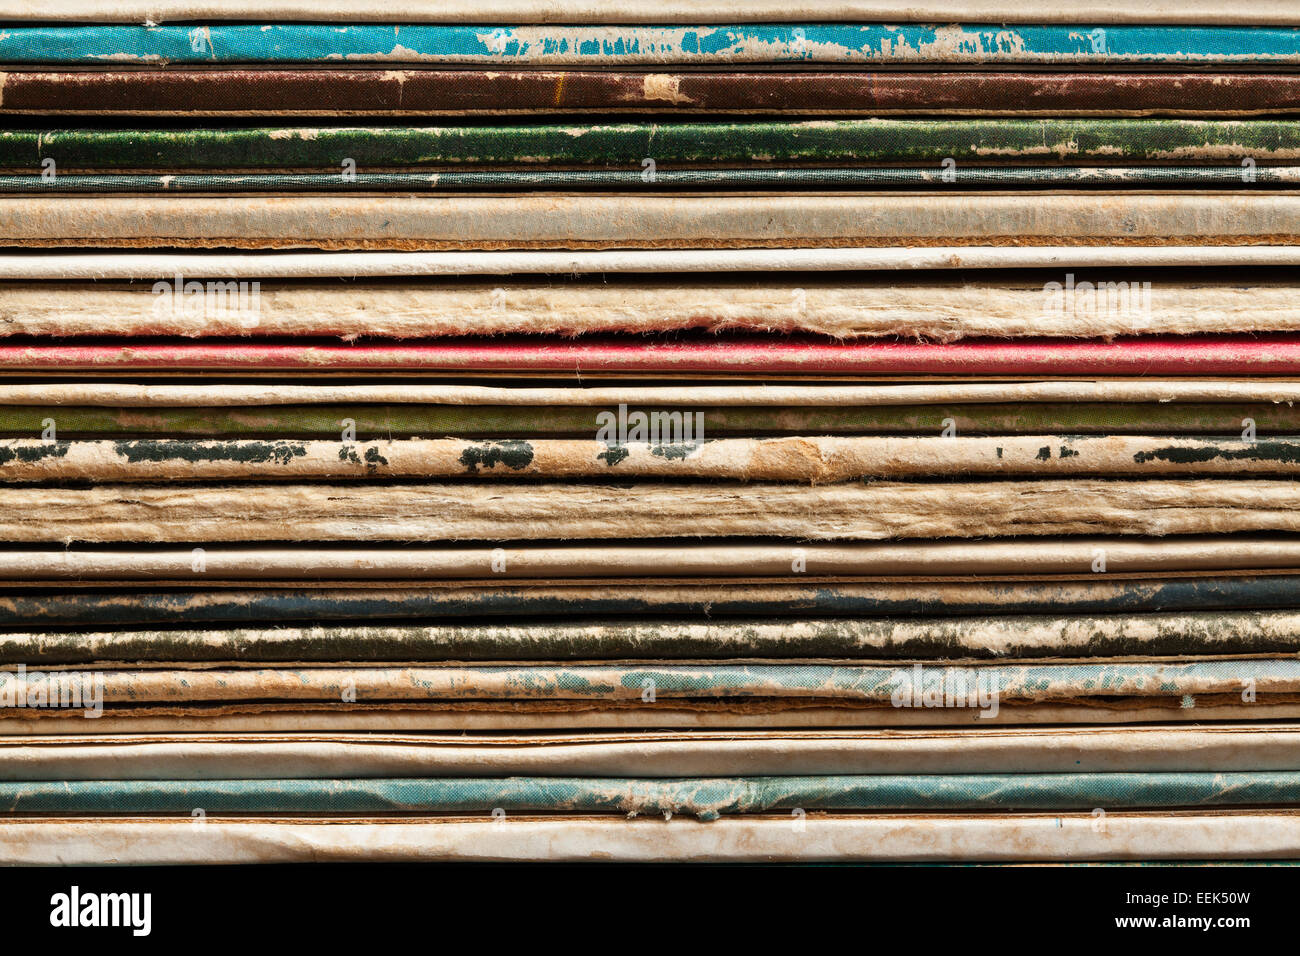 record cover texture - Stock Image